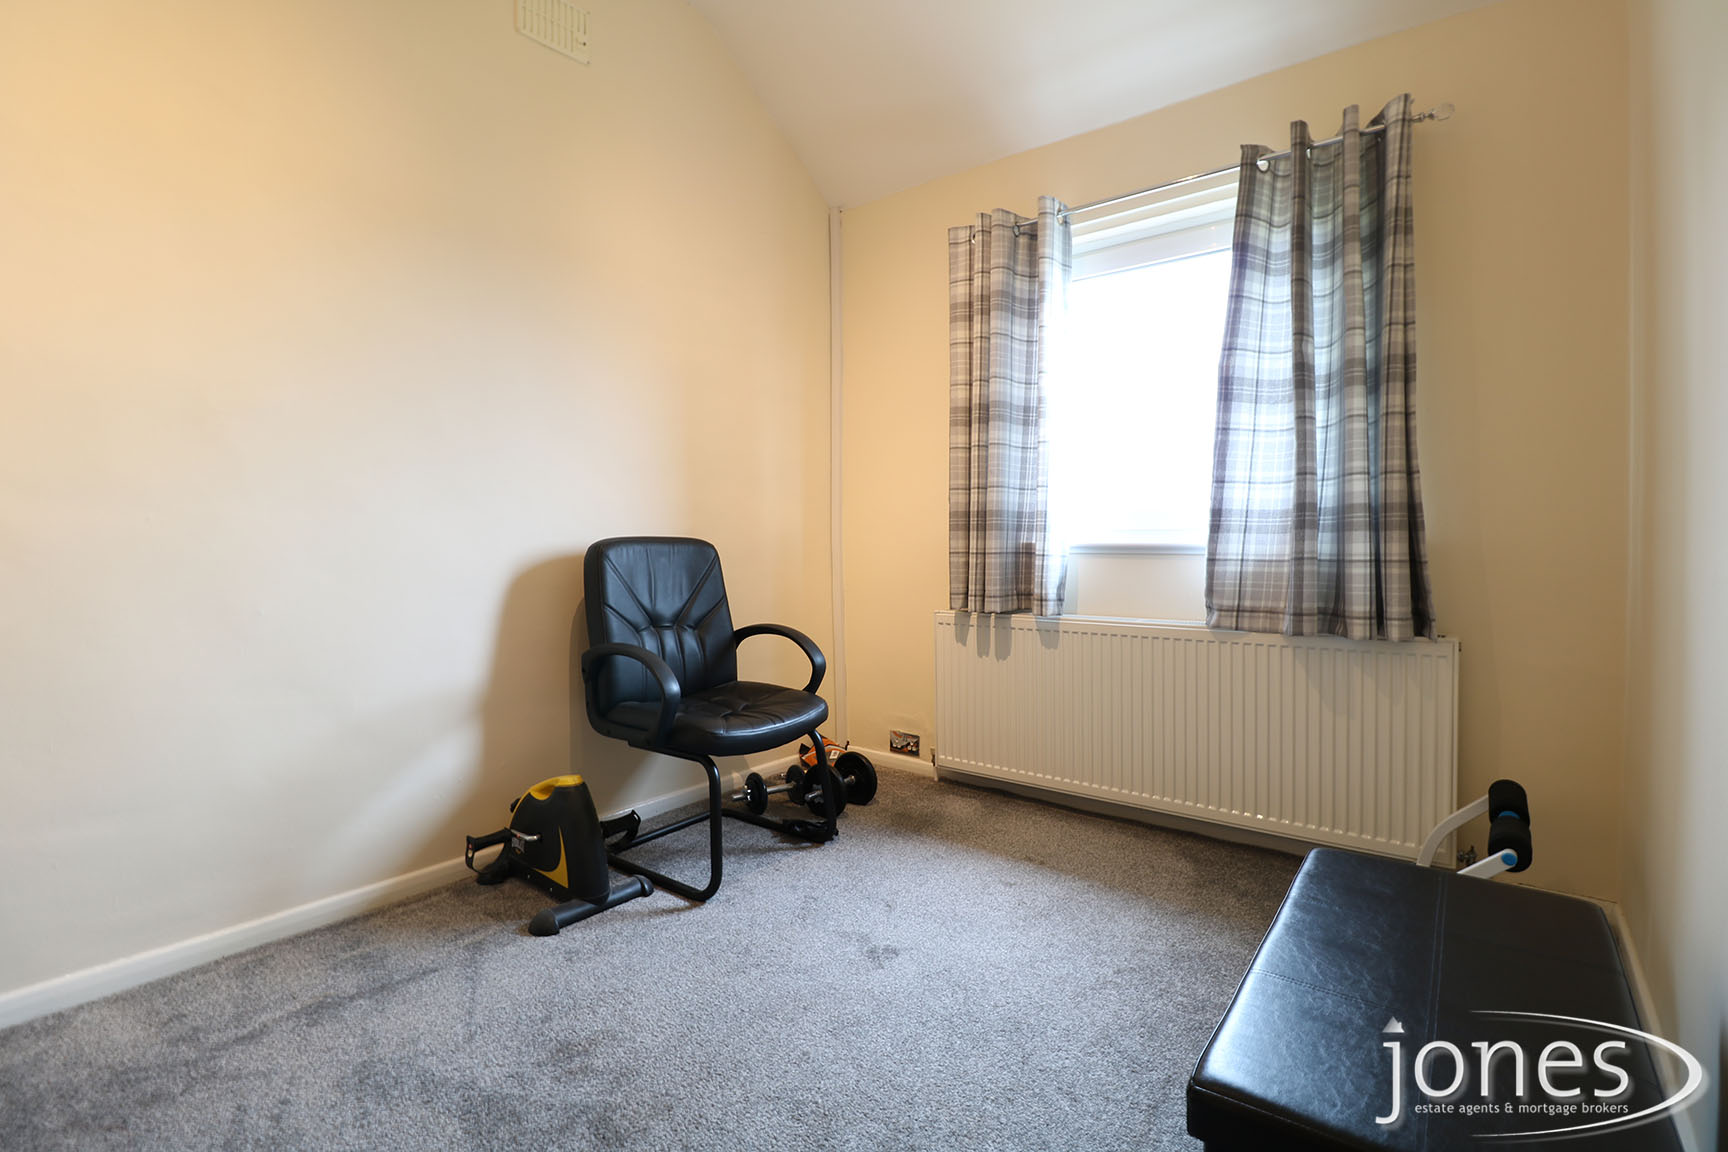 Home for Sale Let - Photo 06 Mill Crescent, Whitwell, Worksop, S80 4SF